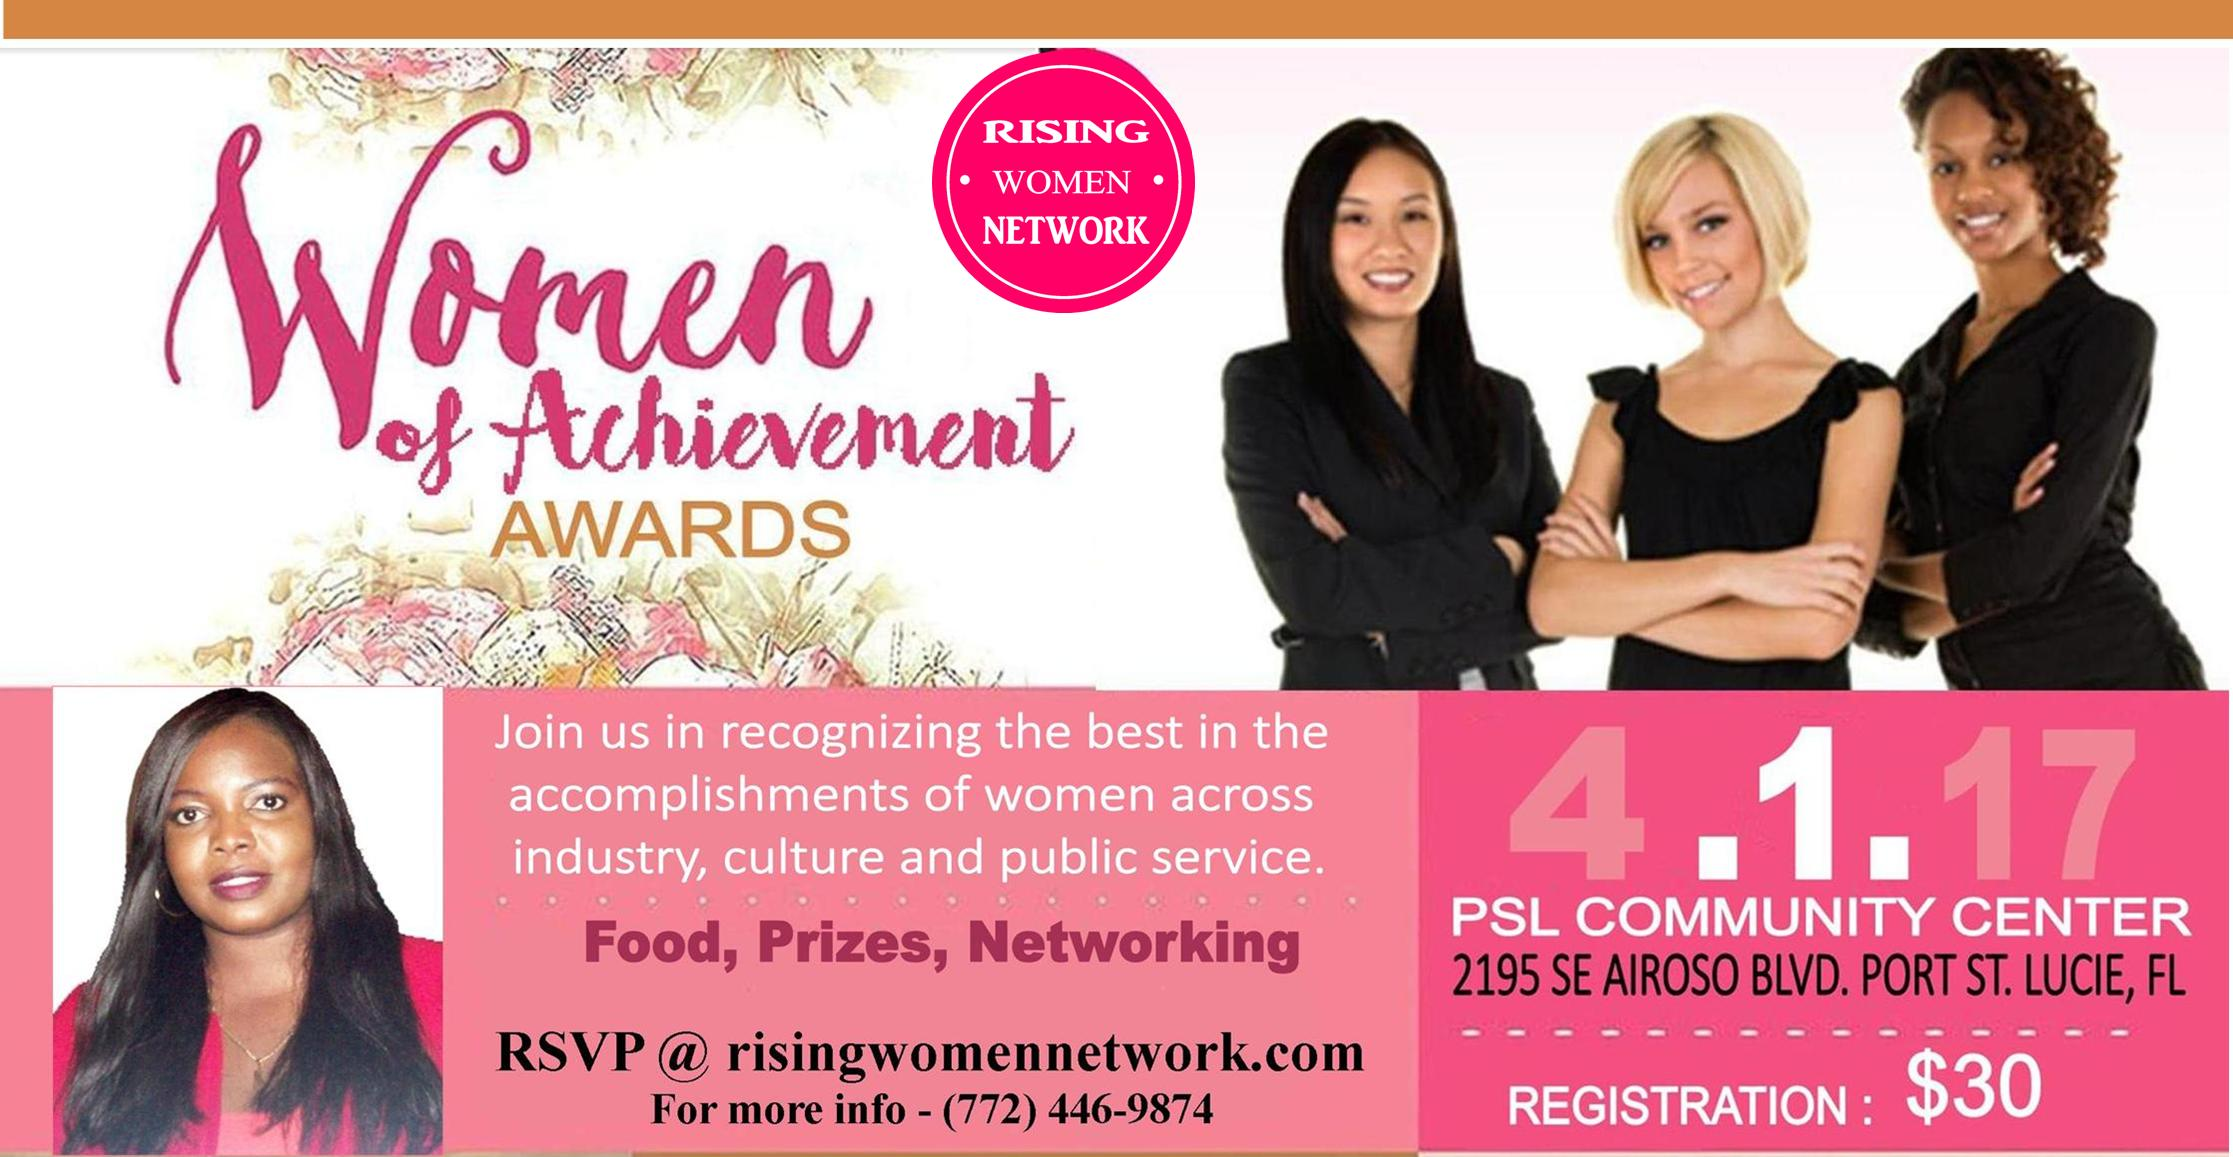 The Women of Achievement Awards is an annual luncheon that honors three women who have demonstrated qualities of leadership and excellence.